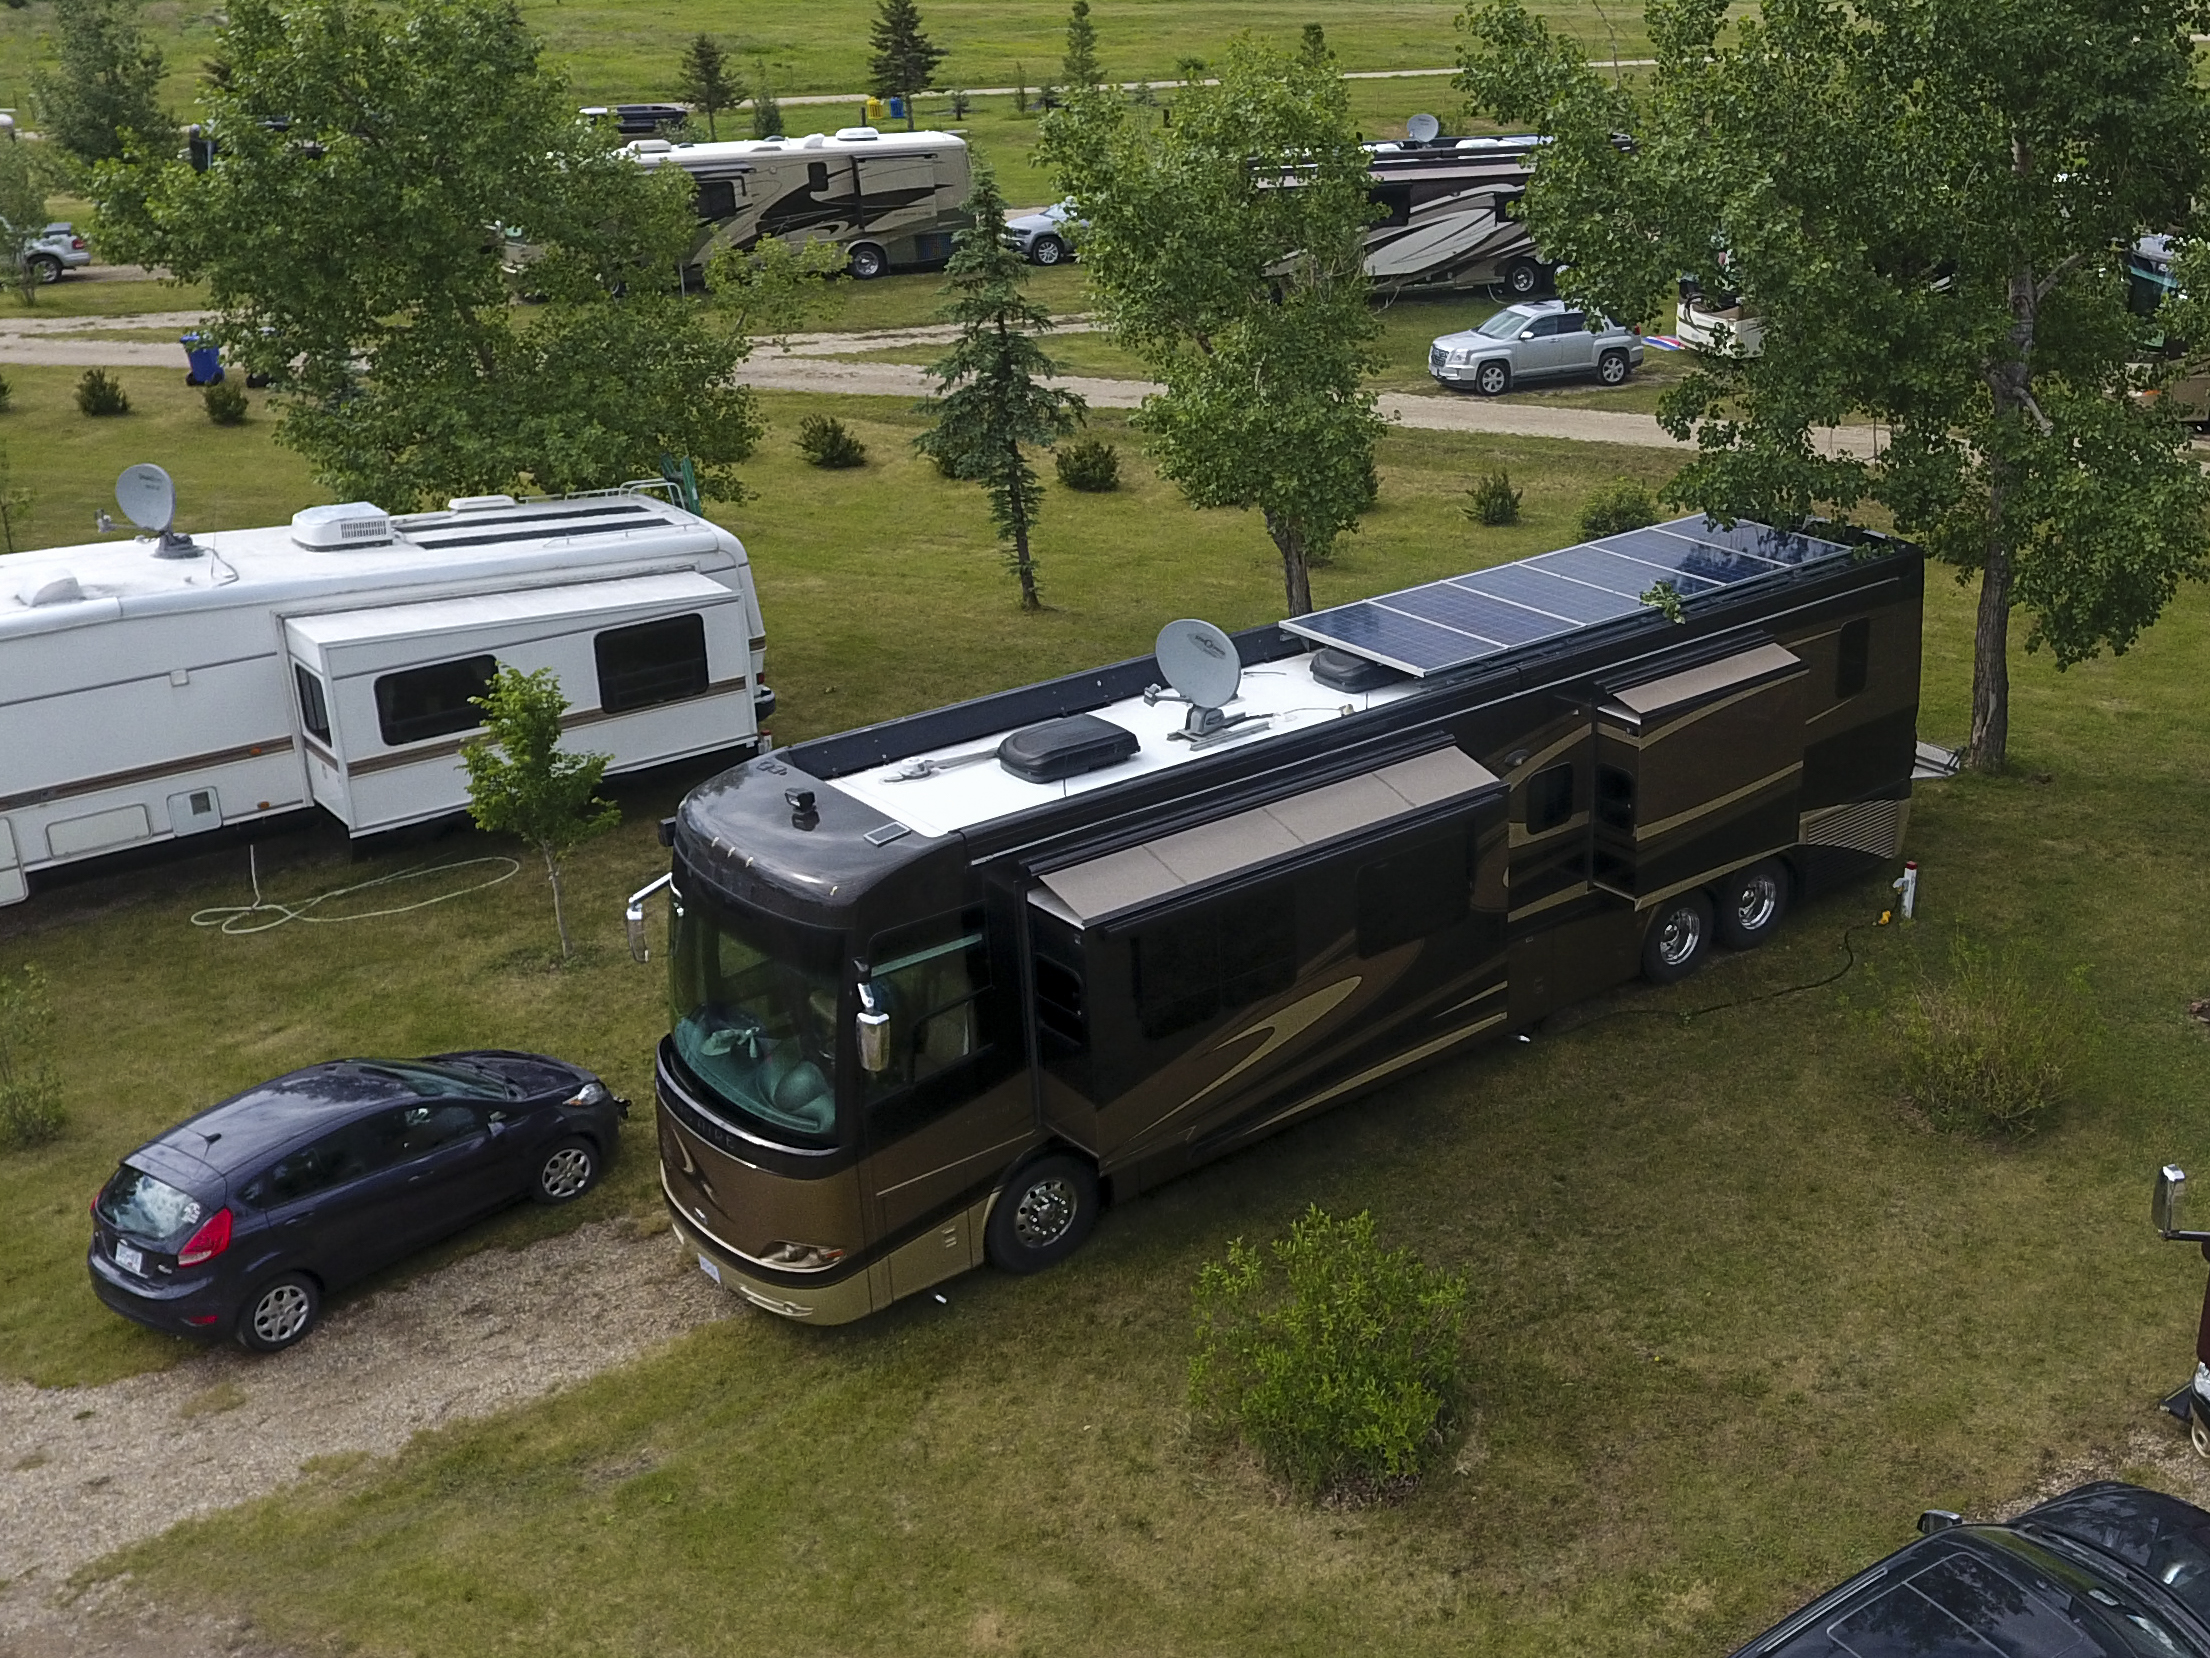 Six 305 Watt Solar Panels Installed On A King Aire. (That's A Newmar 5th Wheel On The Left.)